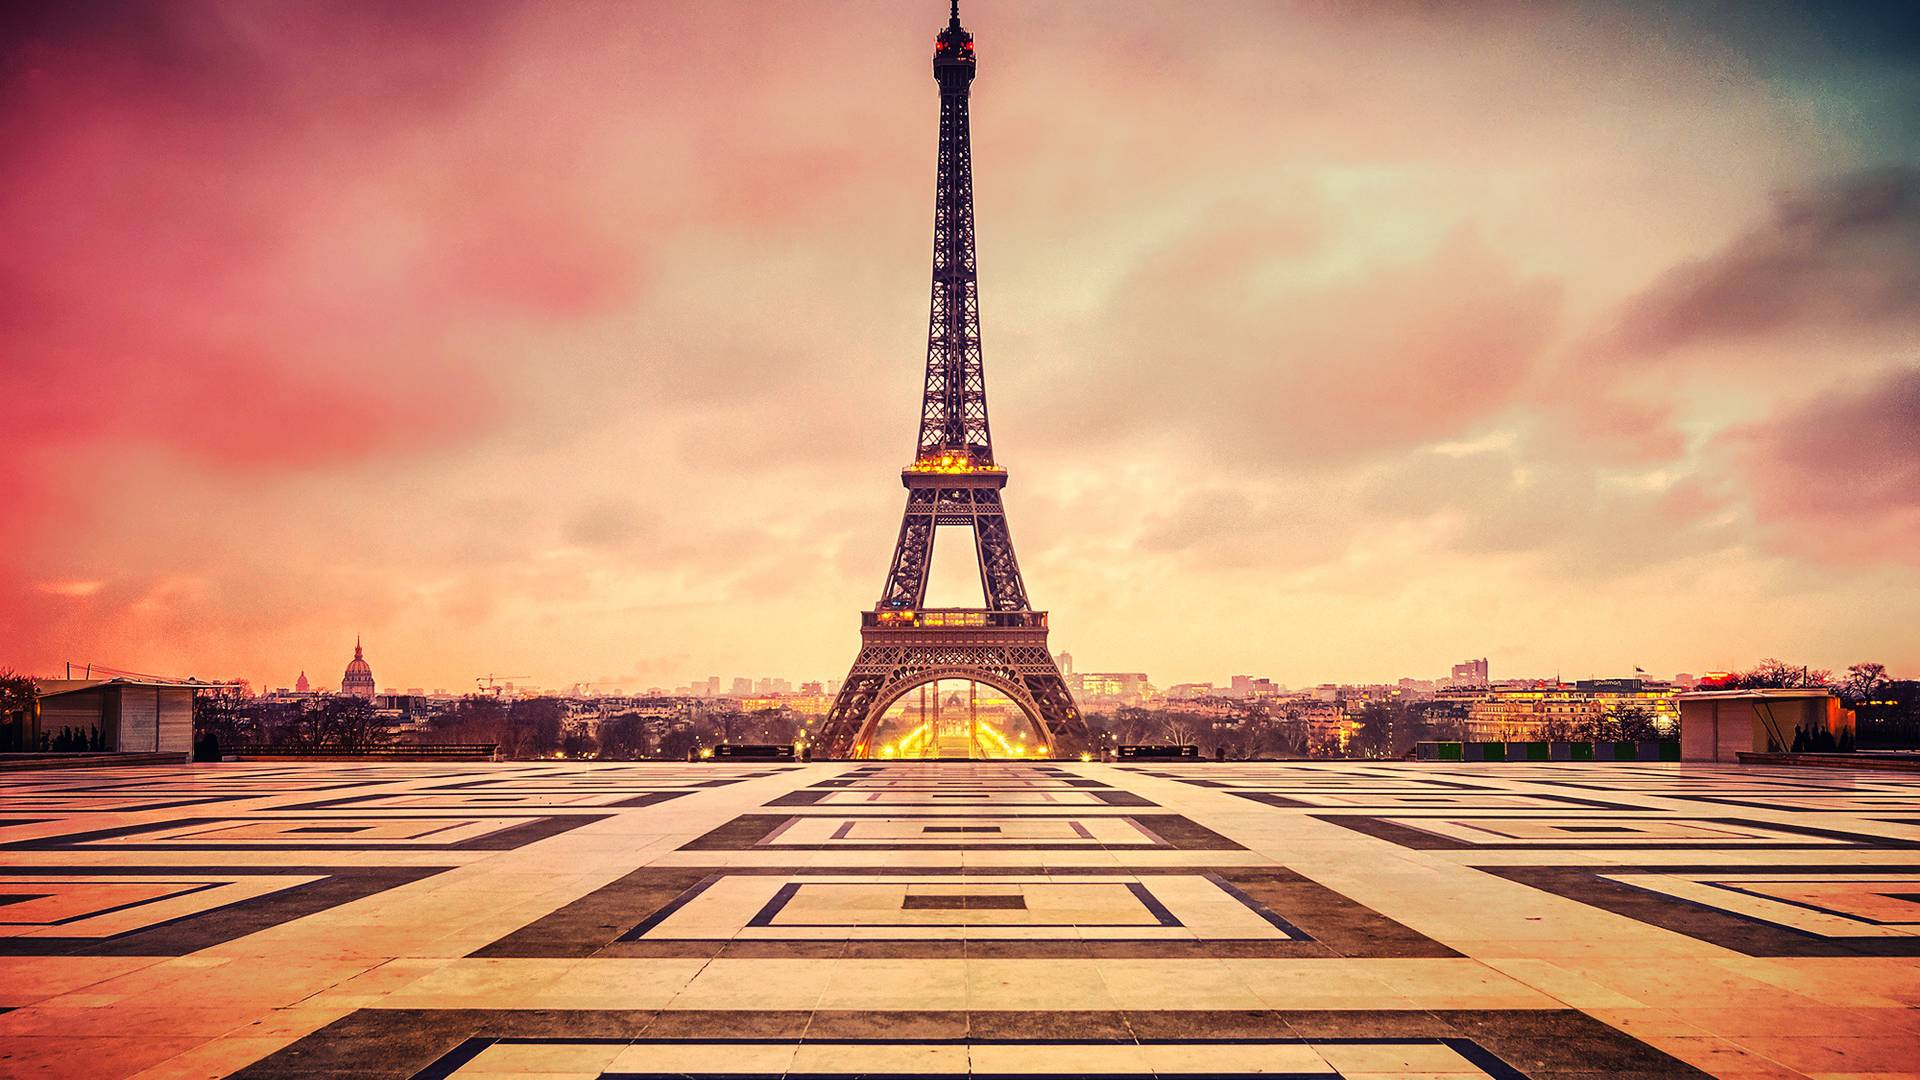 35 HD Paris Backgrounds The City Of Lights And Romance 1920x1080